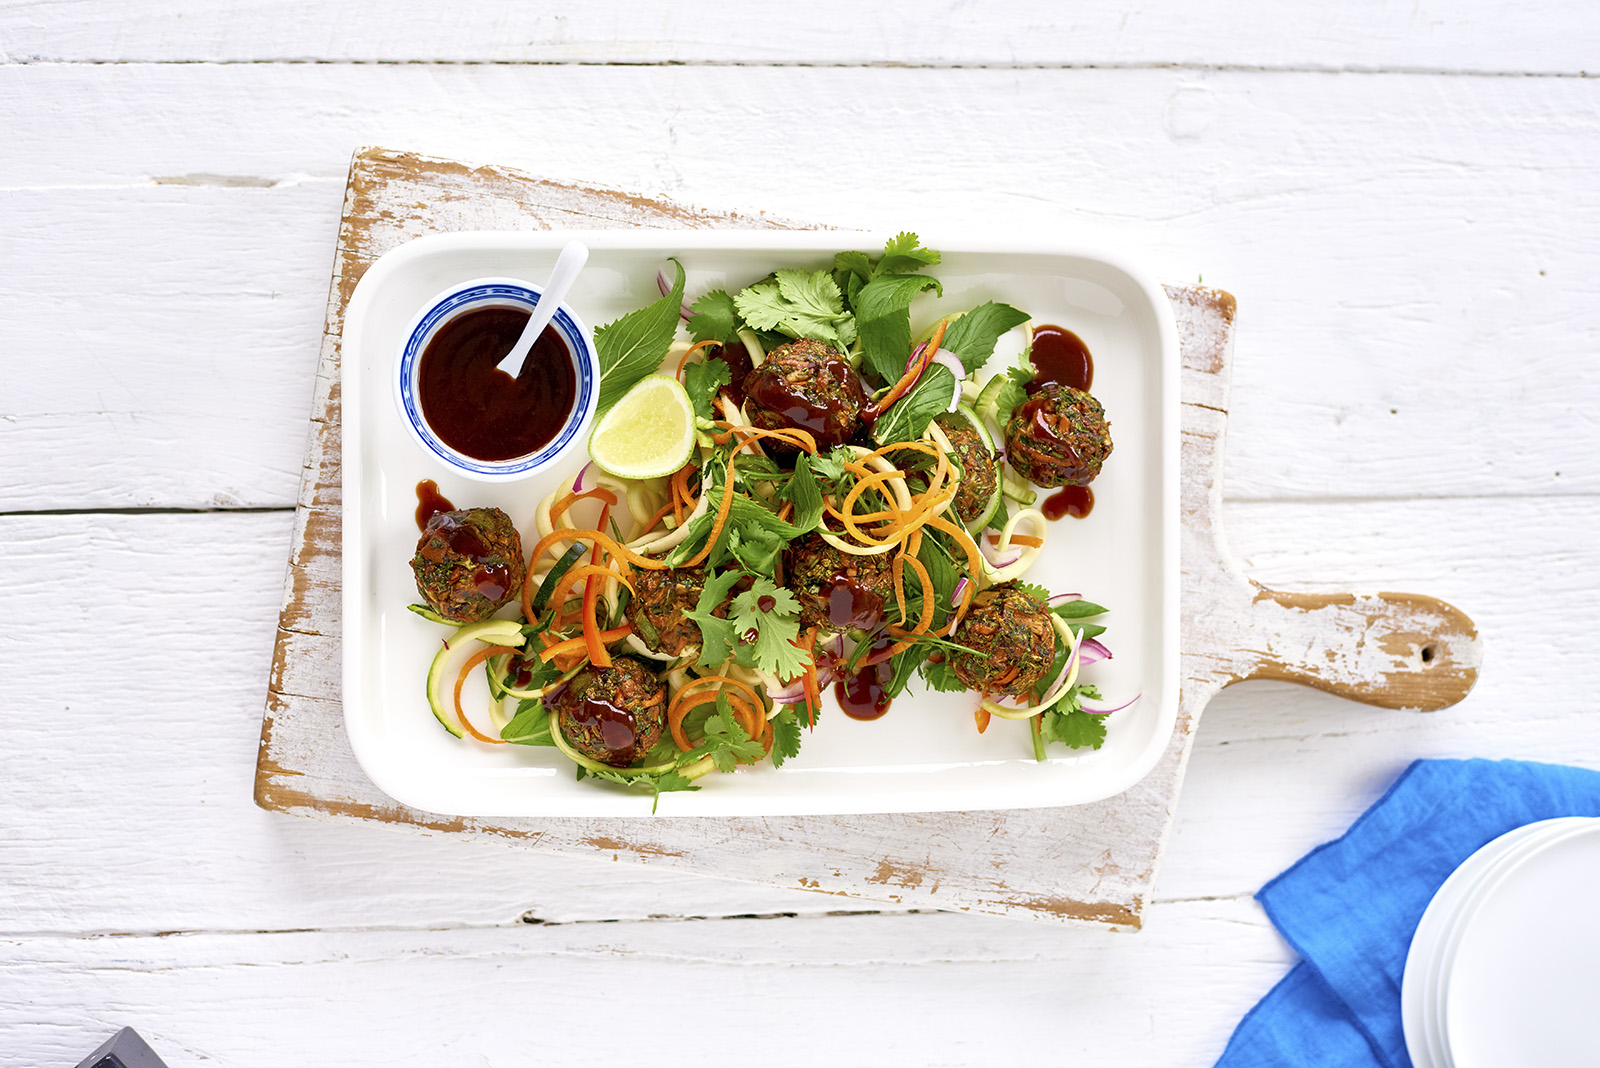 Asian vegetable fritter balls with hoisin sauce